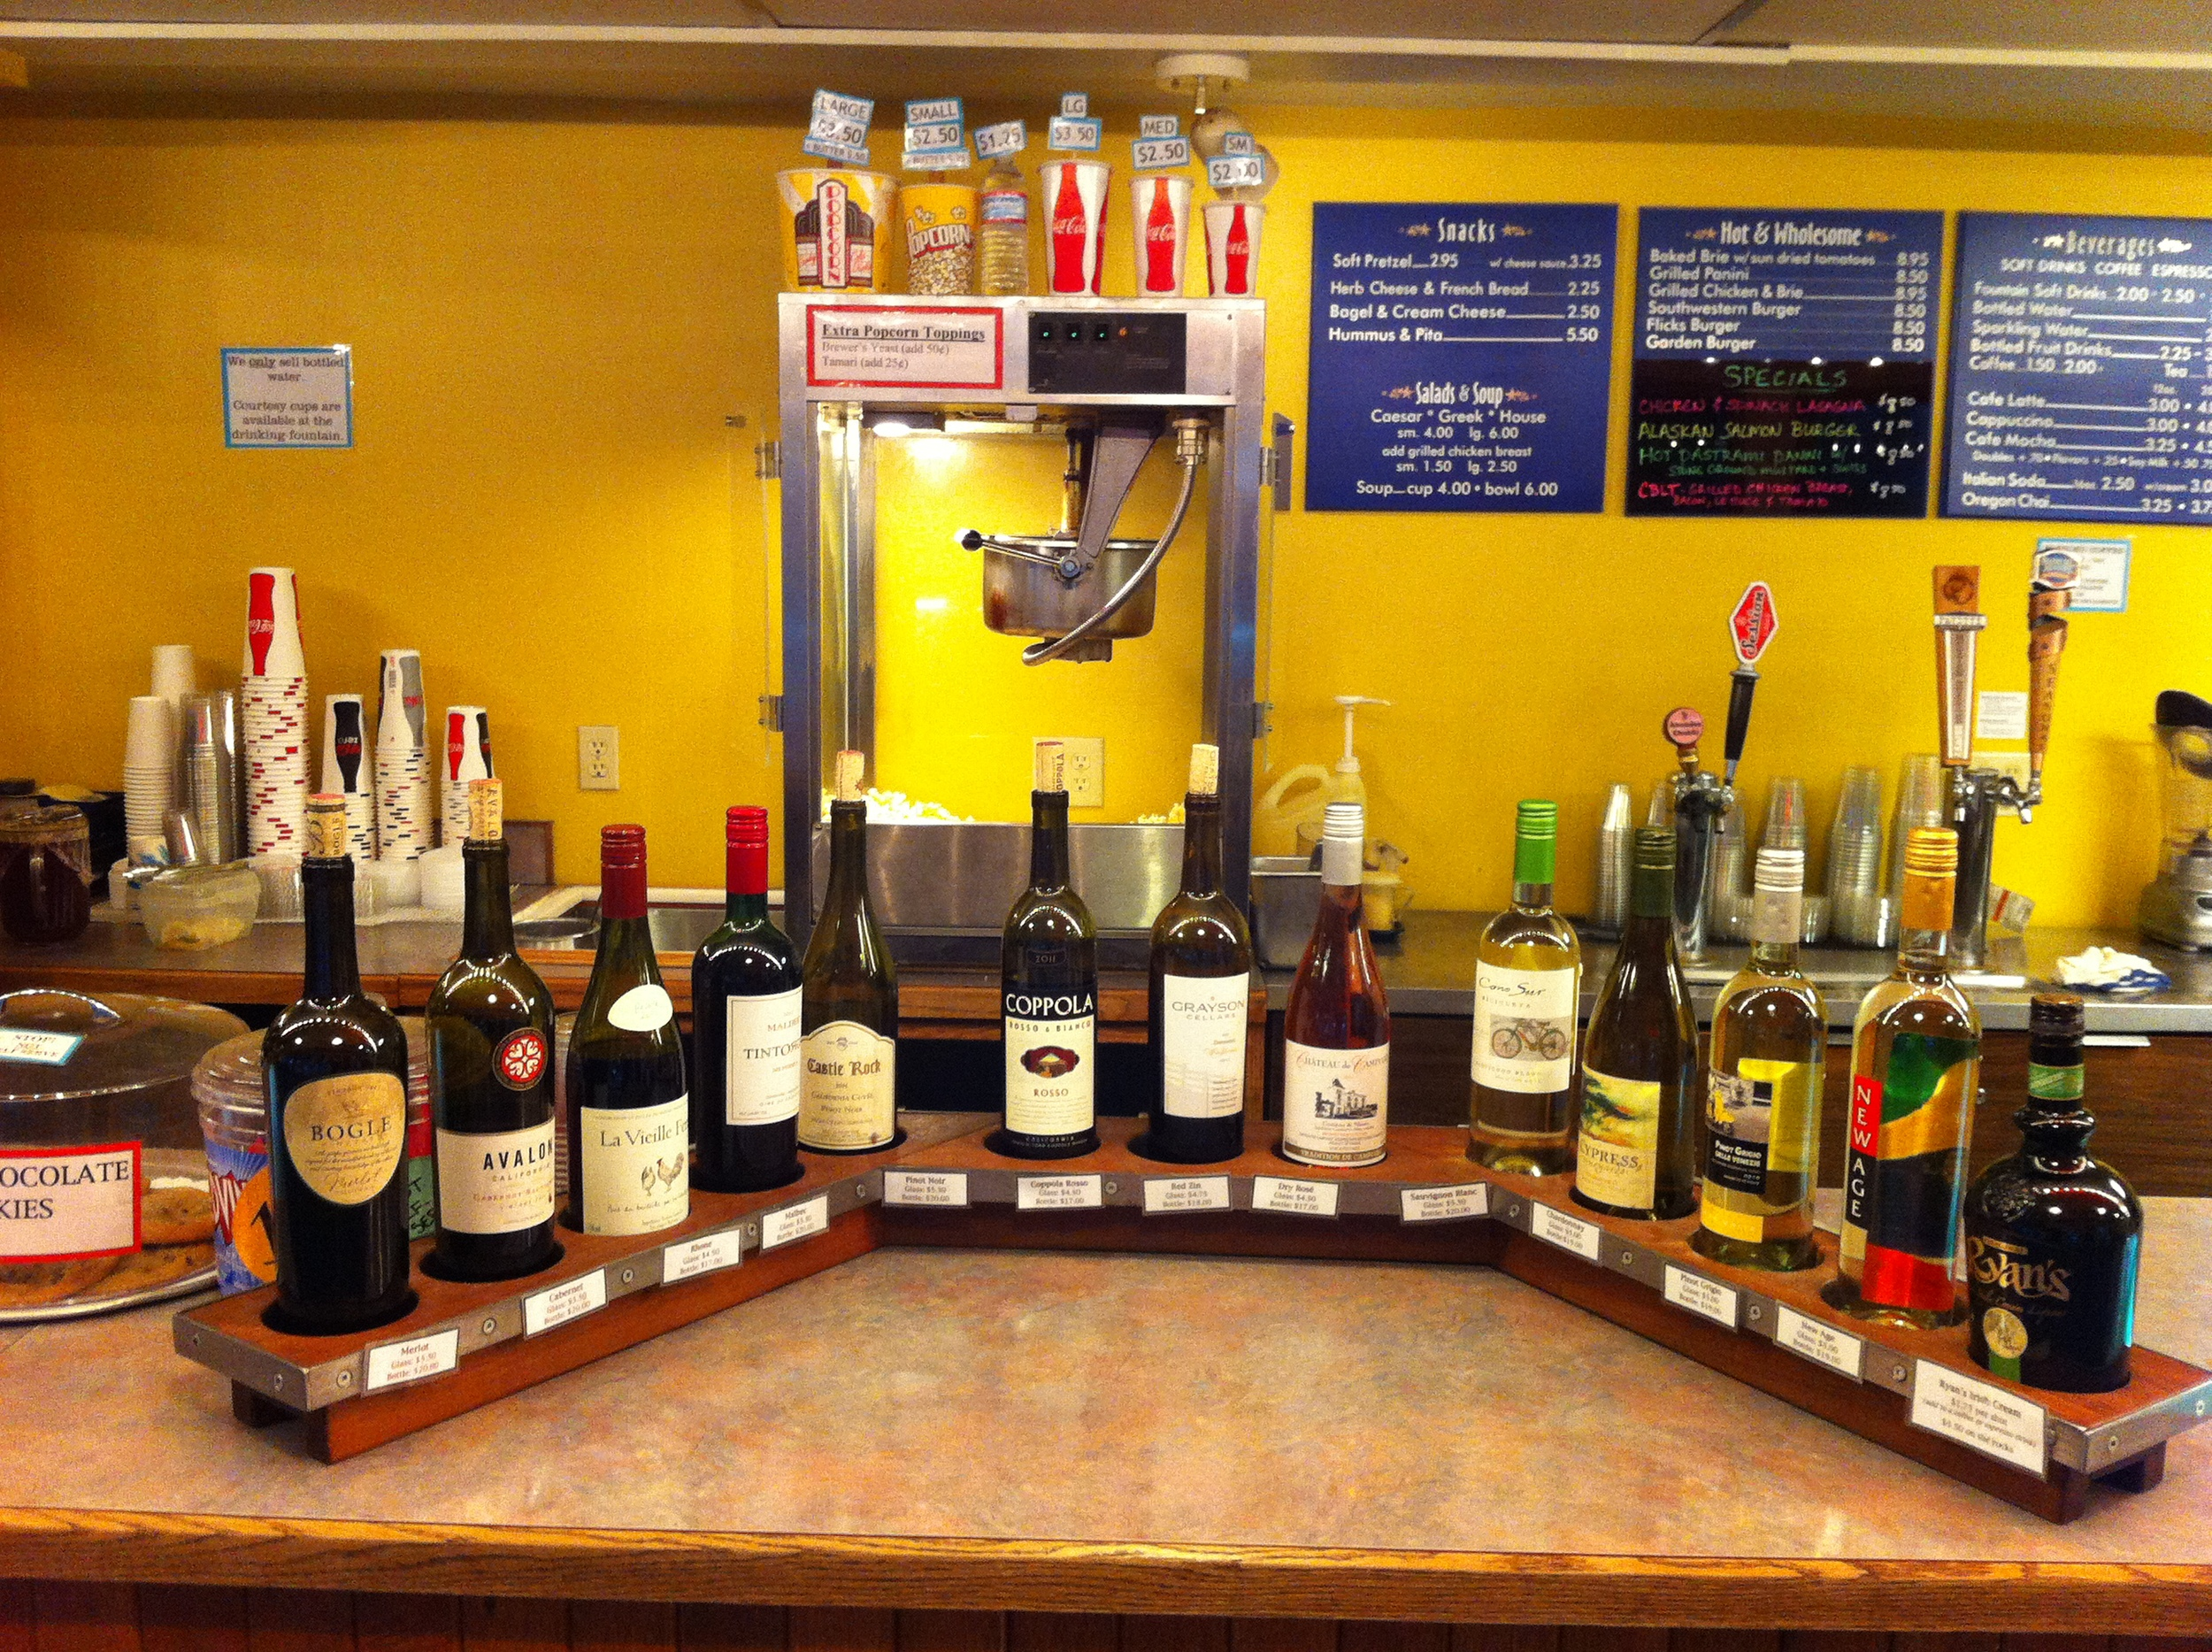 Wine by the glass, bottles of beer and note there is also draft beer.